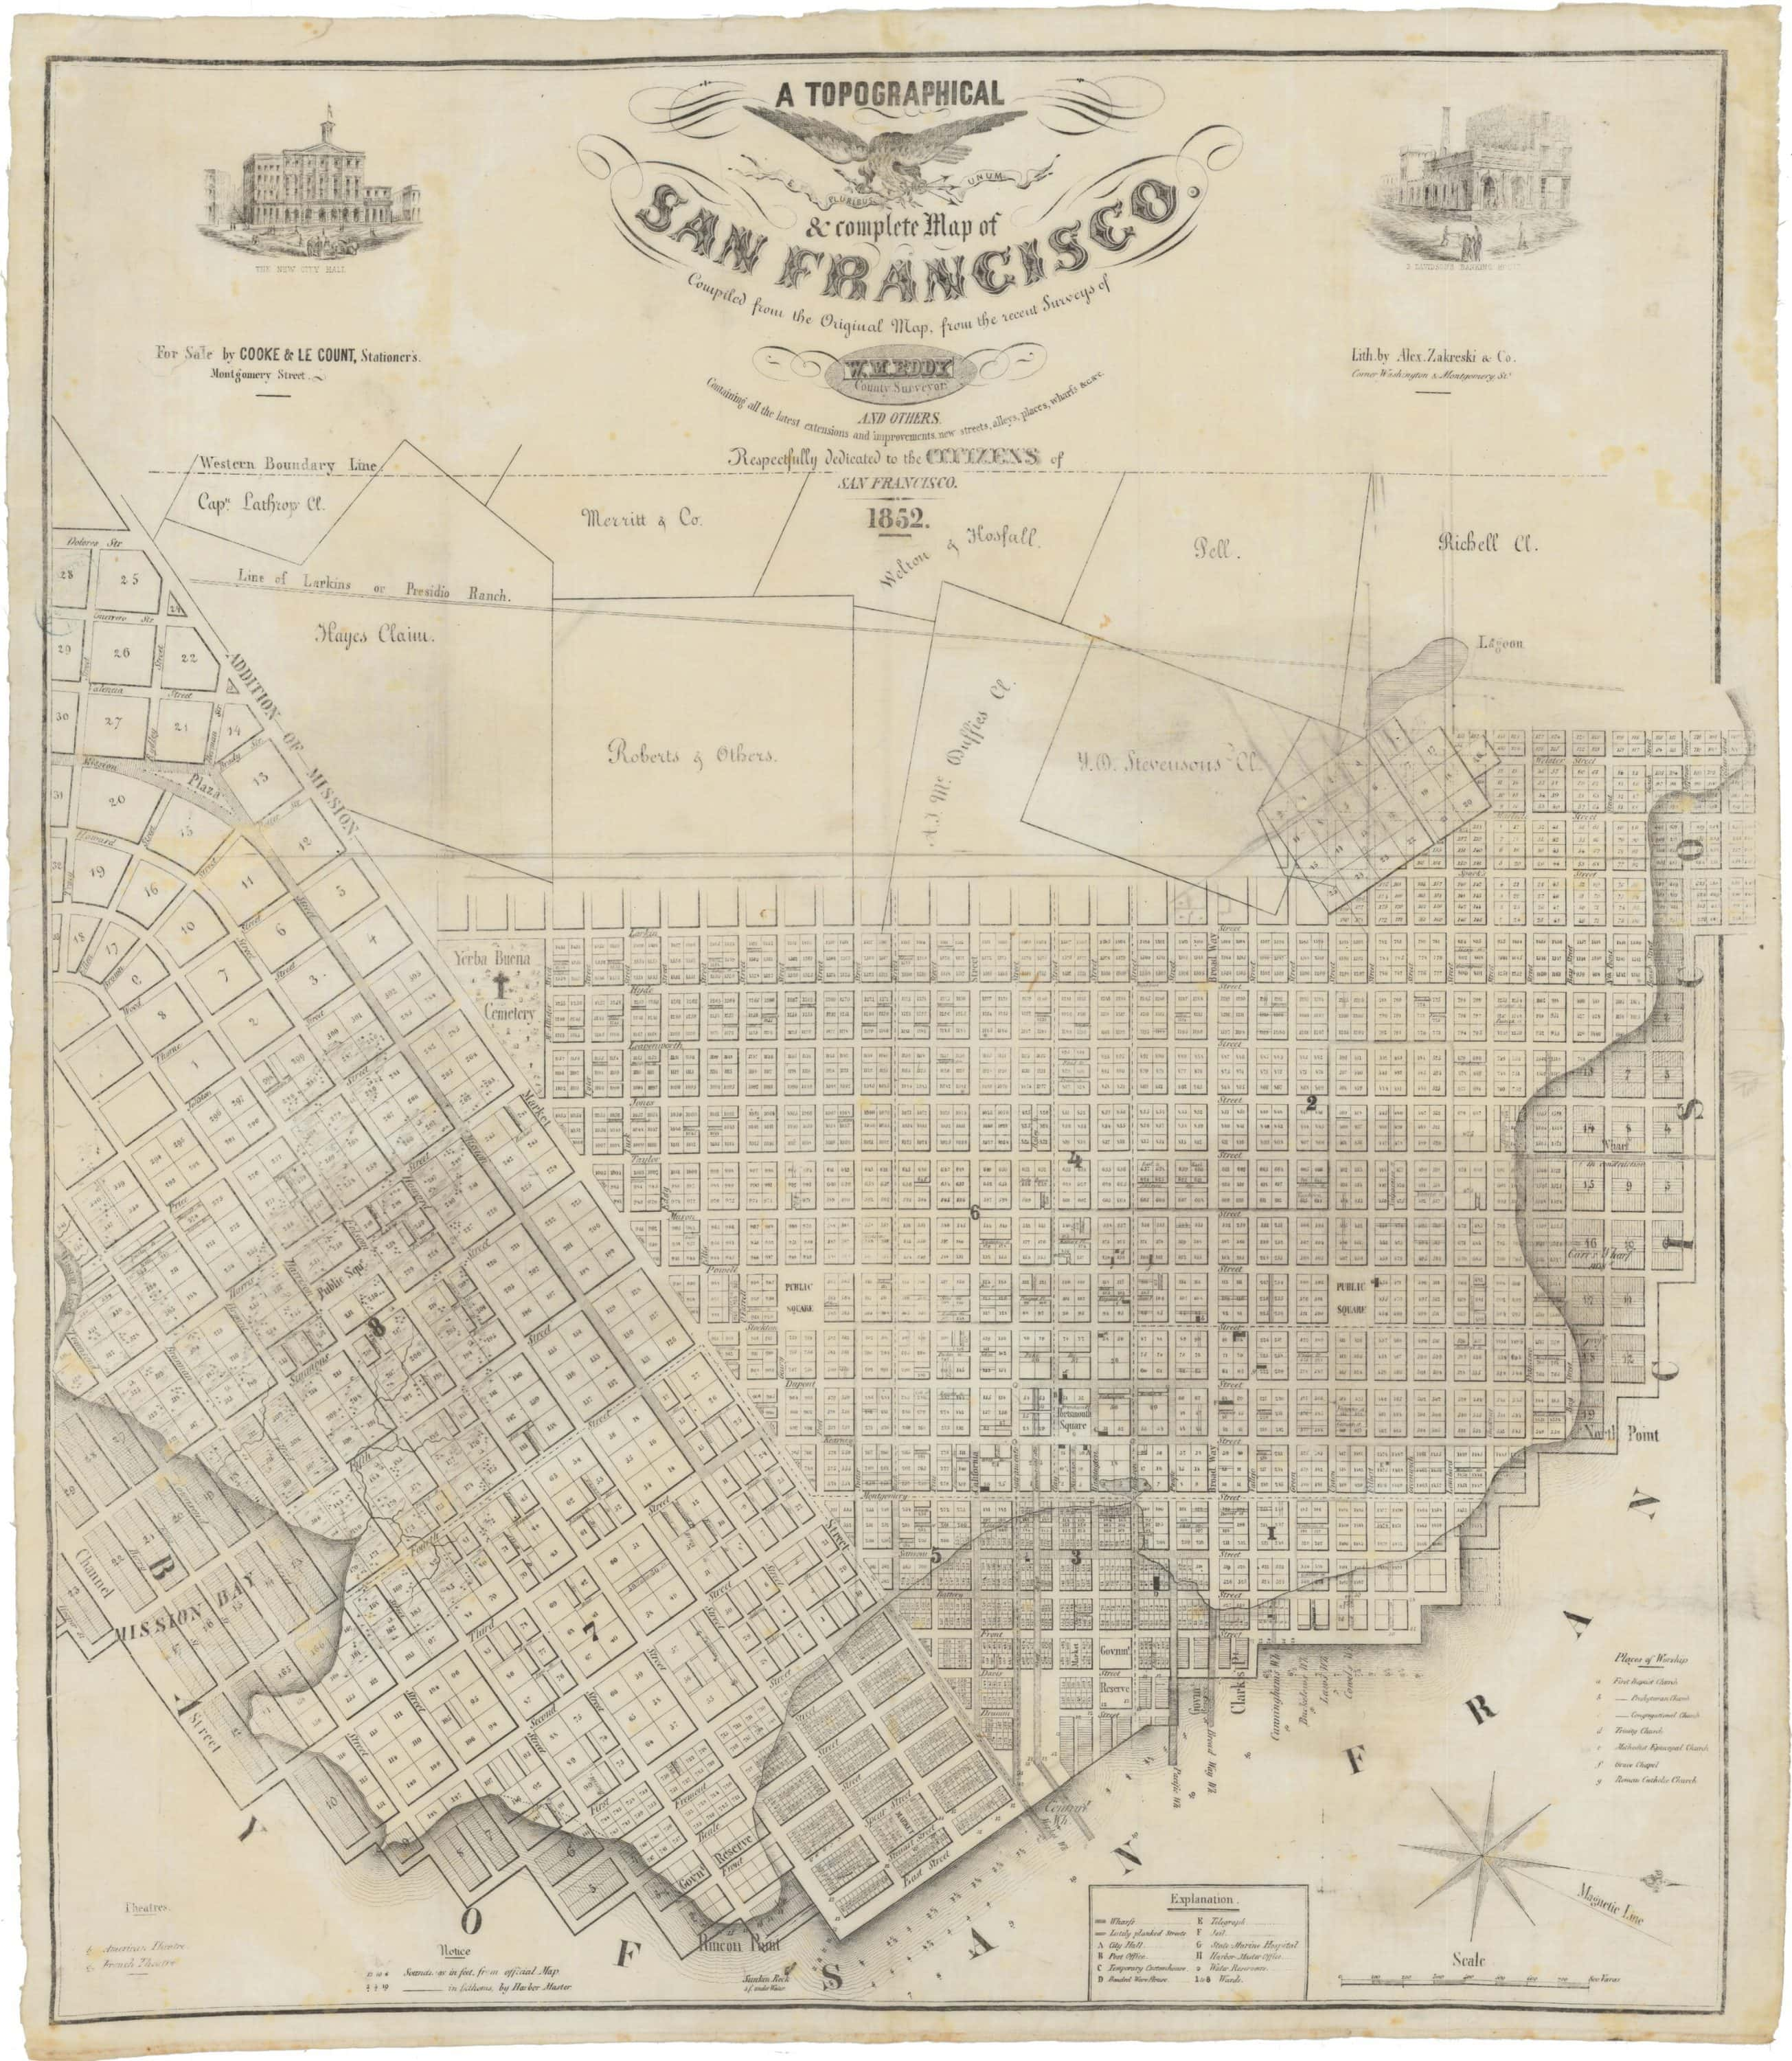 An essential early Map of San Francisco, printed on linen on map of chicago sites, map of lisbon sites, map san fra, map of paris sites, map of united states sites, map of istanbul sites, map of st. augustine sites, map of new hampshire sites, map of event, map of jerusalem sites, map of downtown chicago restaurants, map of munich sites, map of athens sites, map of marin, map of amsterdam sites, map of east bay, map of manhattan sites, map of arizona sites, map of rome sites, map of units,